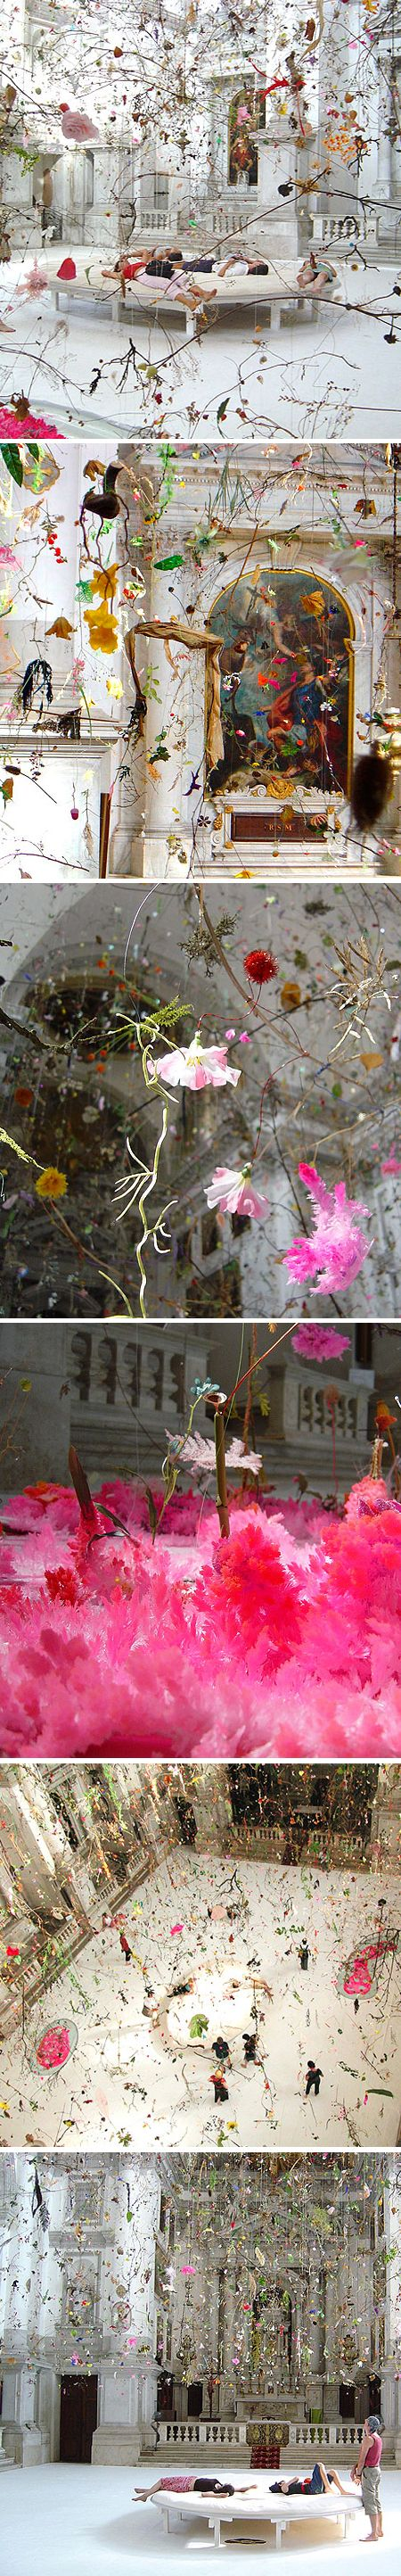 Installation by Gerda Steiner and Jörg Lenzlinger: Flower Installation, Gerda Steiner, Sculpture Installation, Installation Art, Garden Installation, Art Installation, Swiss Artists